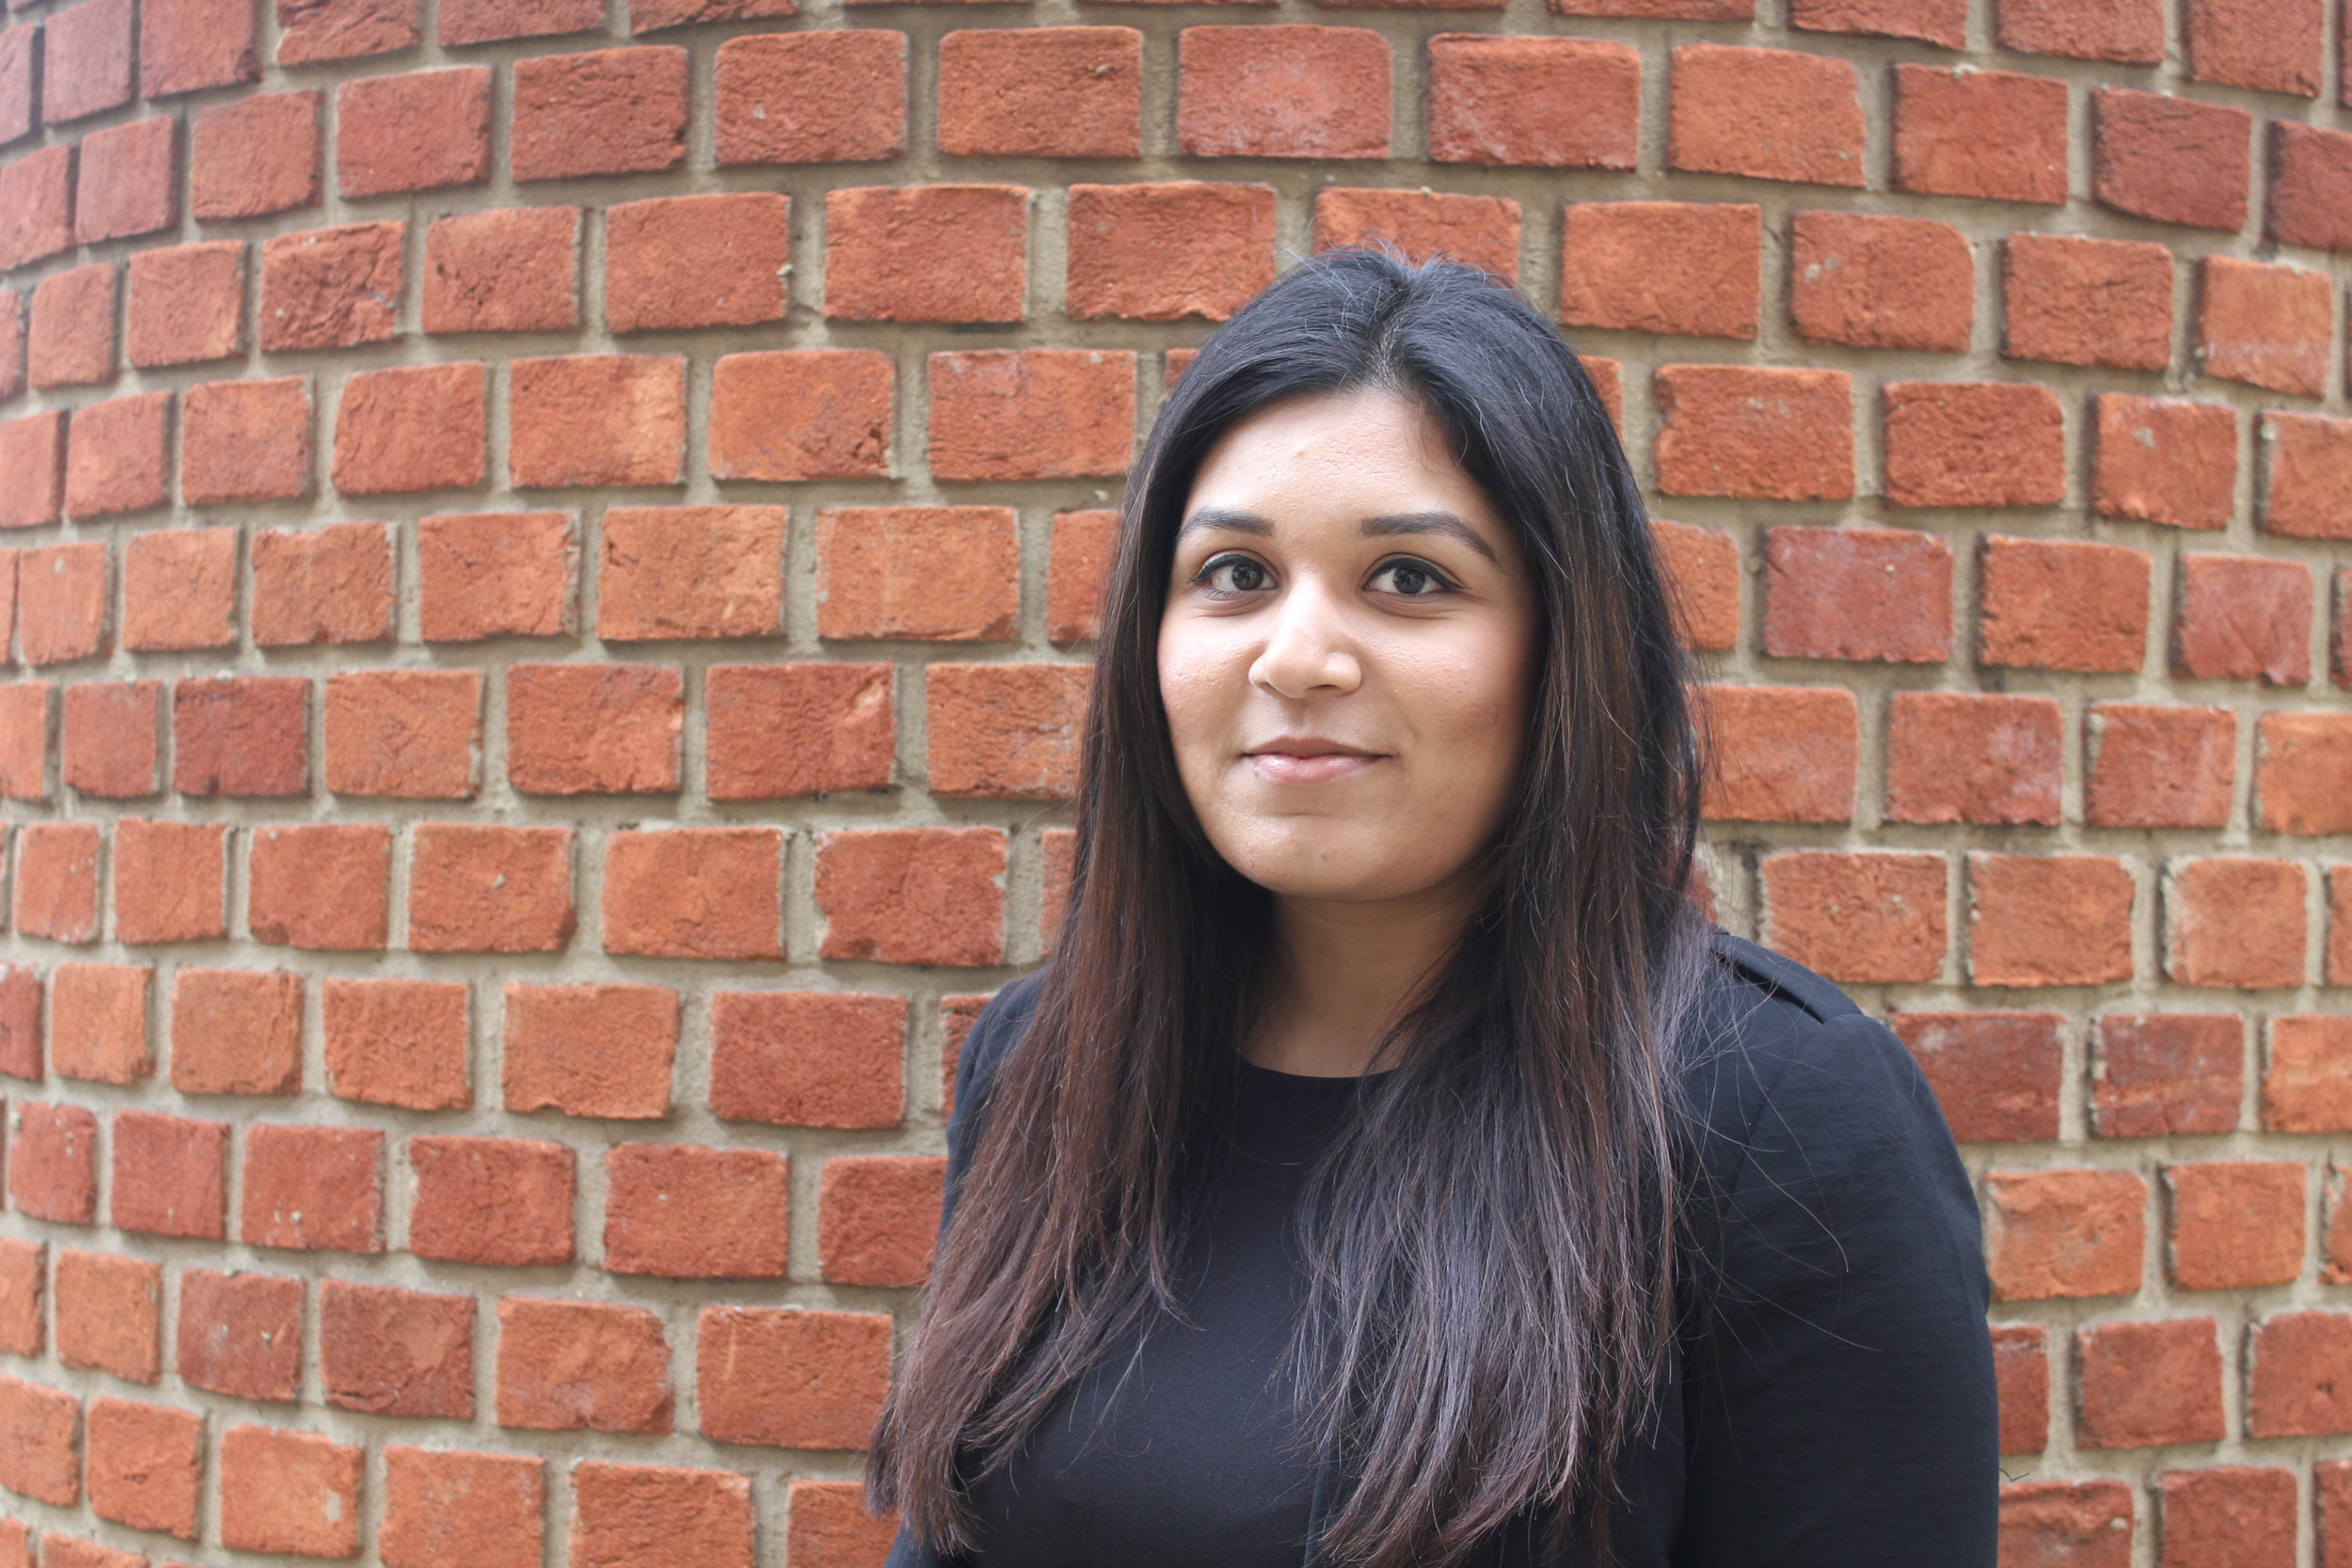 Nikita Assani - Nikita is a Solicitor and has worked in Property law since joining the firm in 2015. Nikita deals with all aspects of conveyancing including shared ownership properties and help to buy matters. She has a special interest in new-build and off-the-plan purchases. Nikita acts for a number of the the firm's buy-to-let investor clients.Nikita read English at Loughborough University and completed her Graduate Diploma in Law at the University of Law.